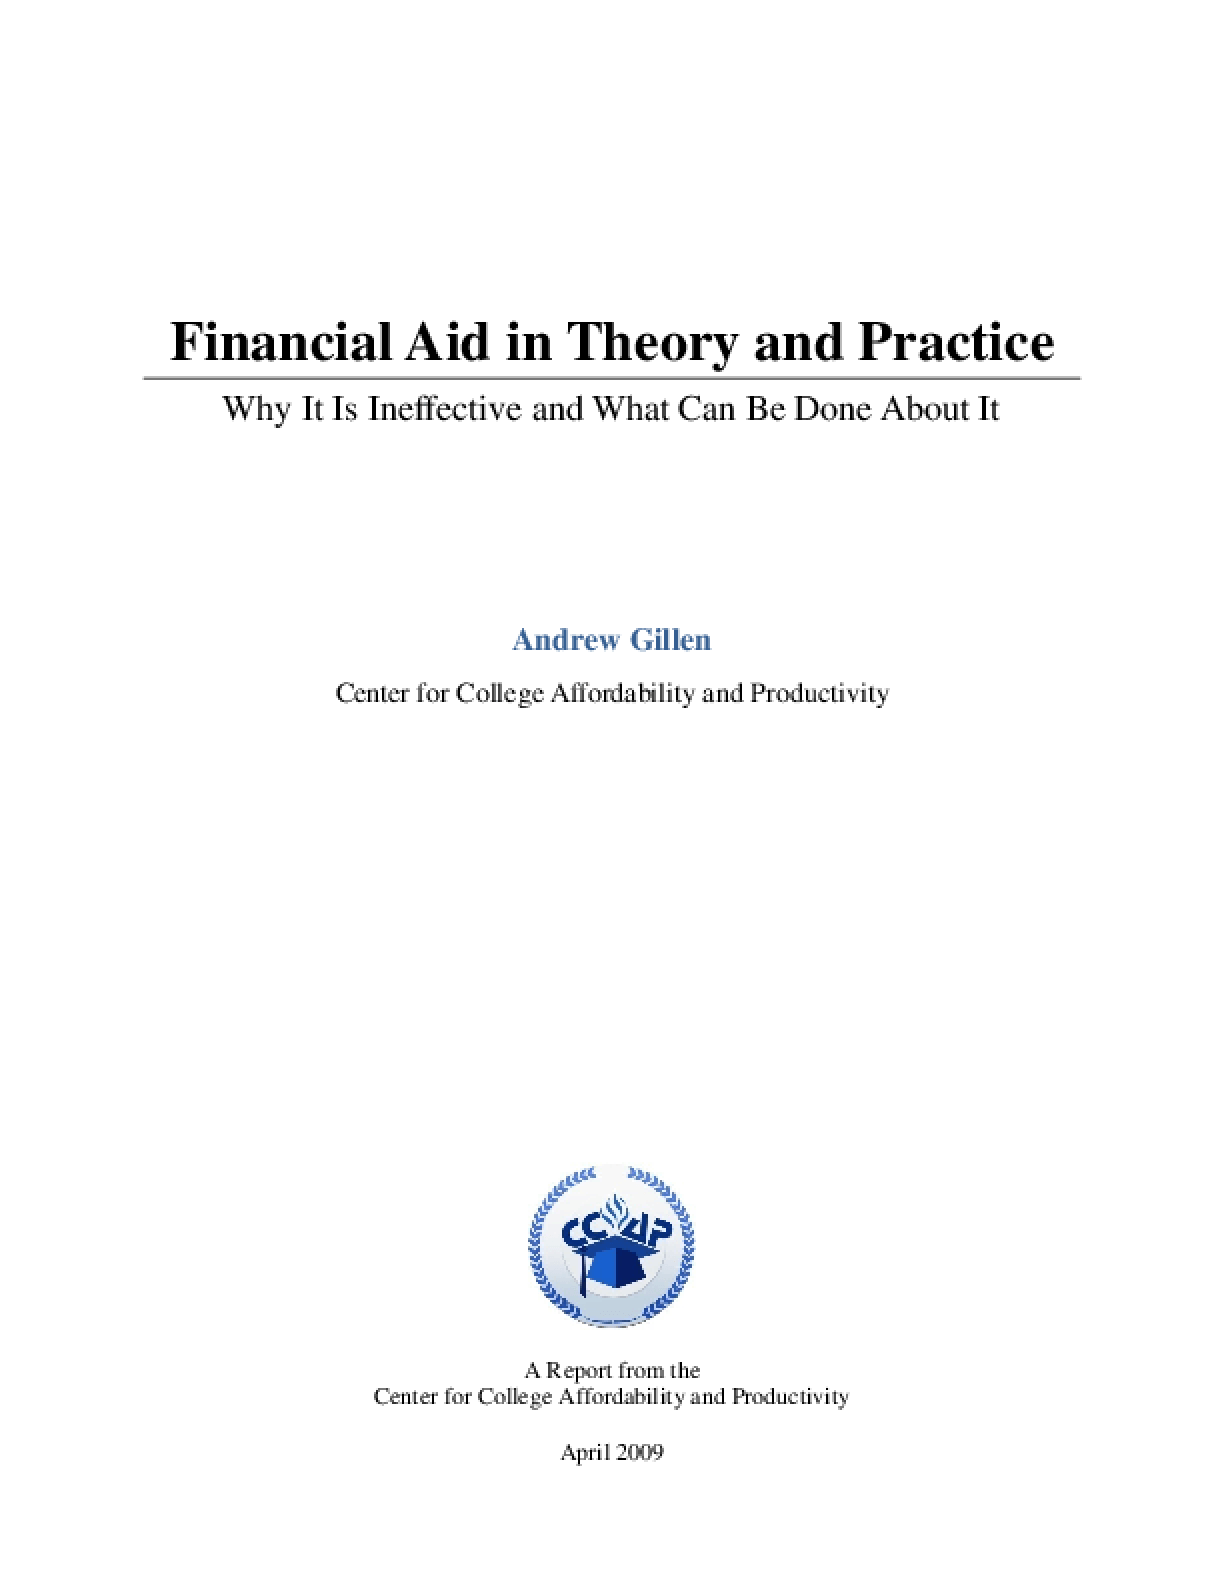 Financial Aid in Theory and Practice: Why It Is Ineffective and What Can Be Done About It